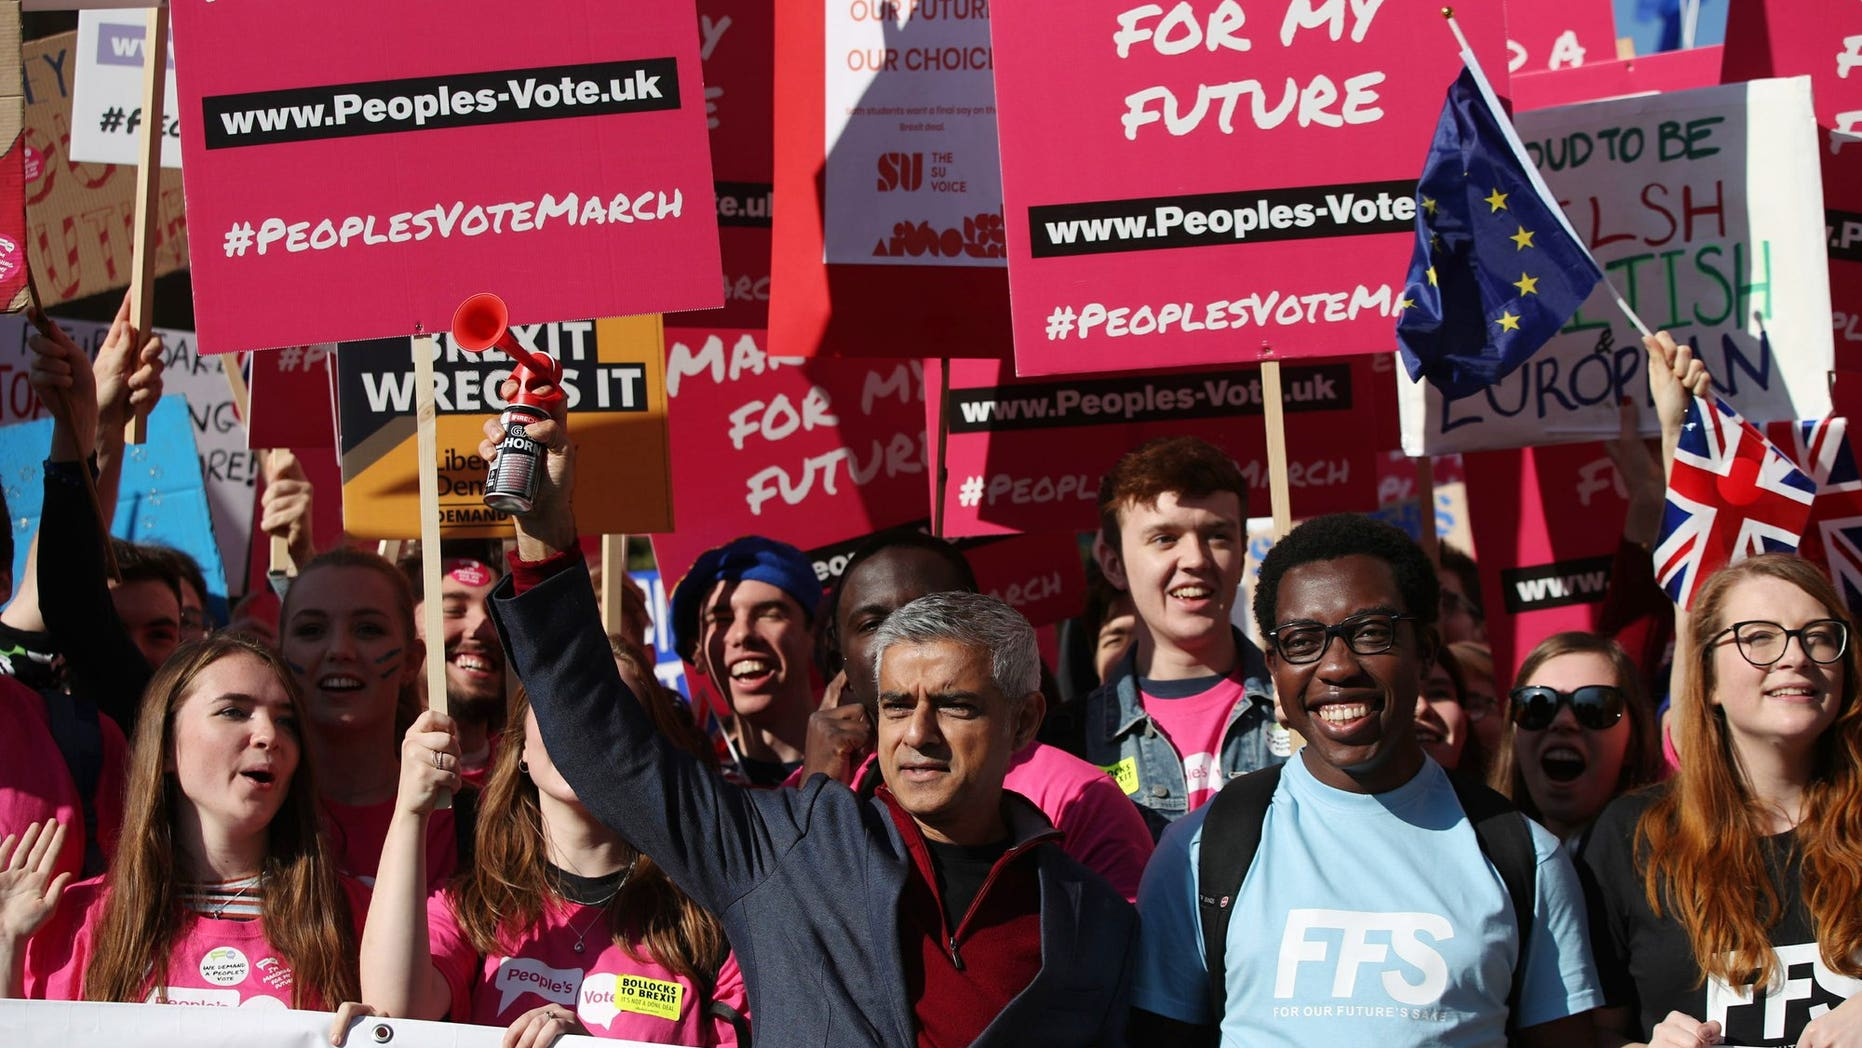 Mayor of London Sadiq Khan, front center, holds a klaxon horn, as he joins protesters in the People's Vote March for the Future, in London, Saturday Oct. 20, 2018. Some thousands of protesters are marching through central London, Saturday, to demand a new referendum on Britain's Brexit departure from the European Union.